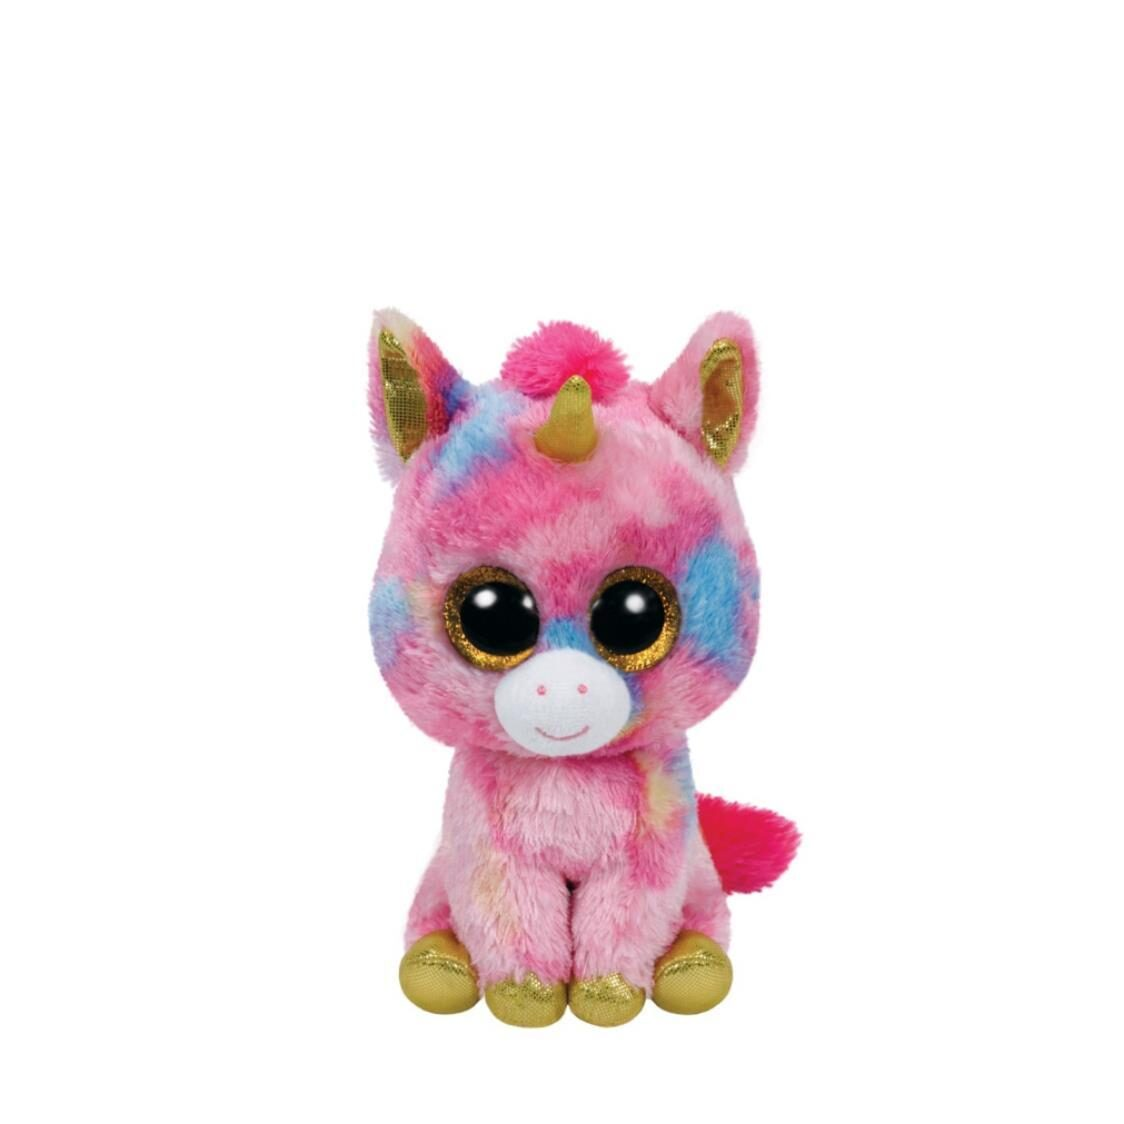 Beanie Boos Fantasia Multicolor Unicorn Reg